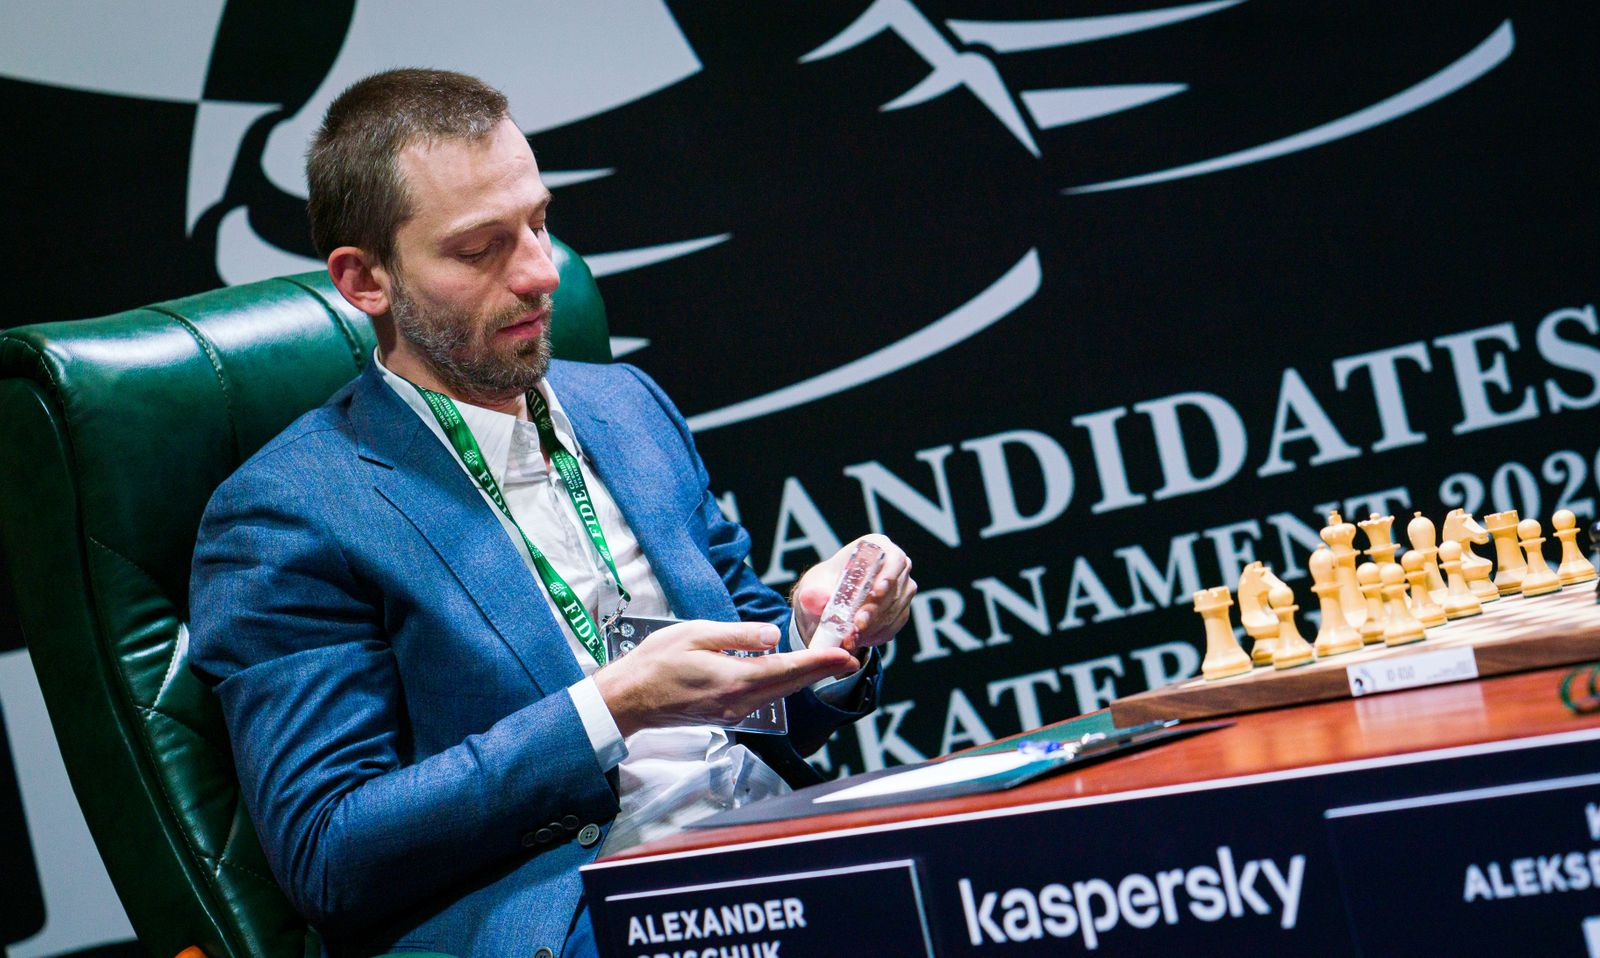 Russian chess player Alexander Grischuk uses hand sanitiser as he takes part in the Candidates Tournament in Yekaterinburg